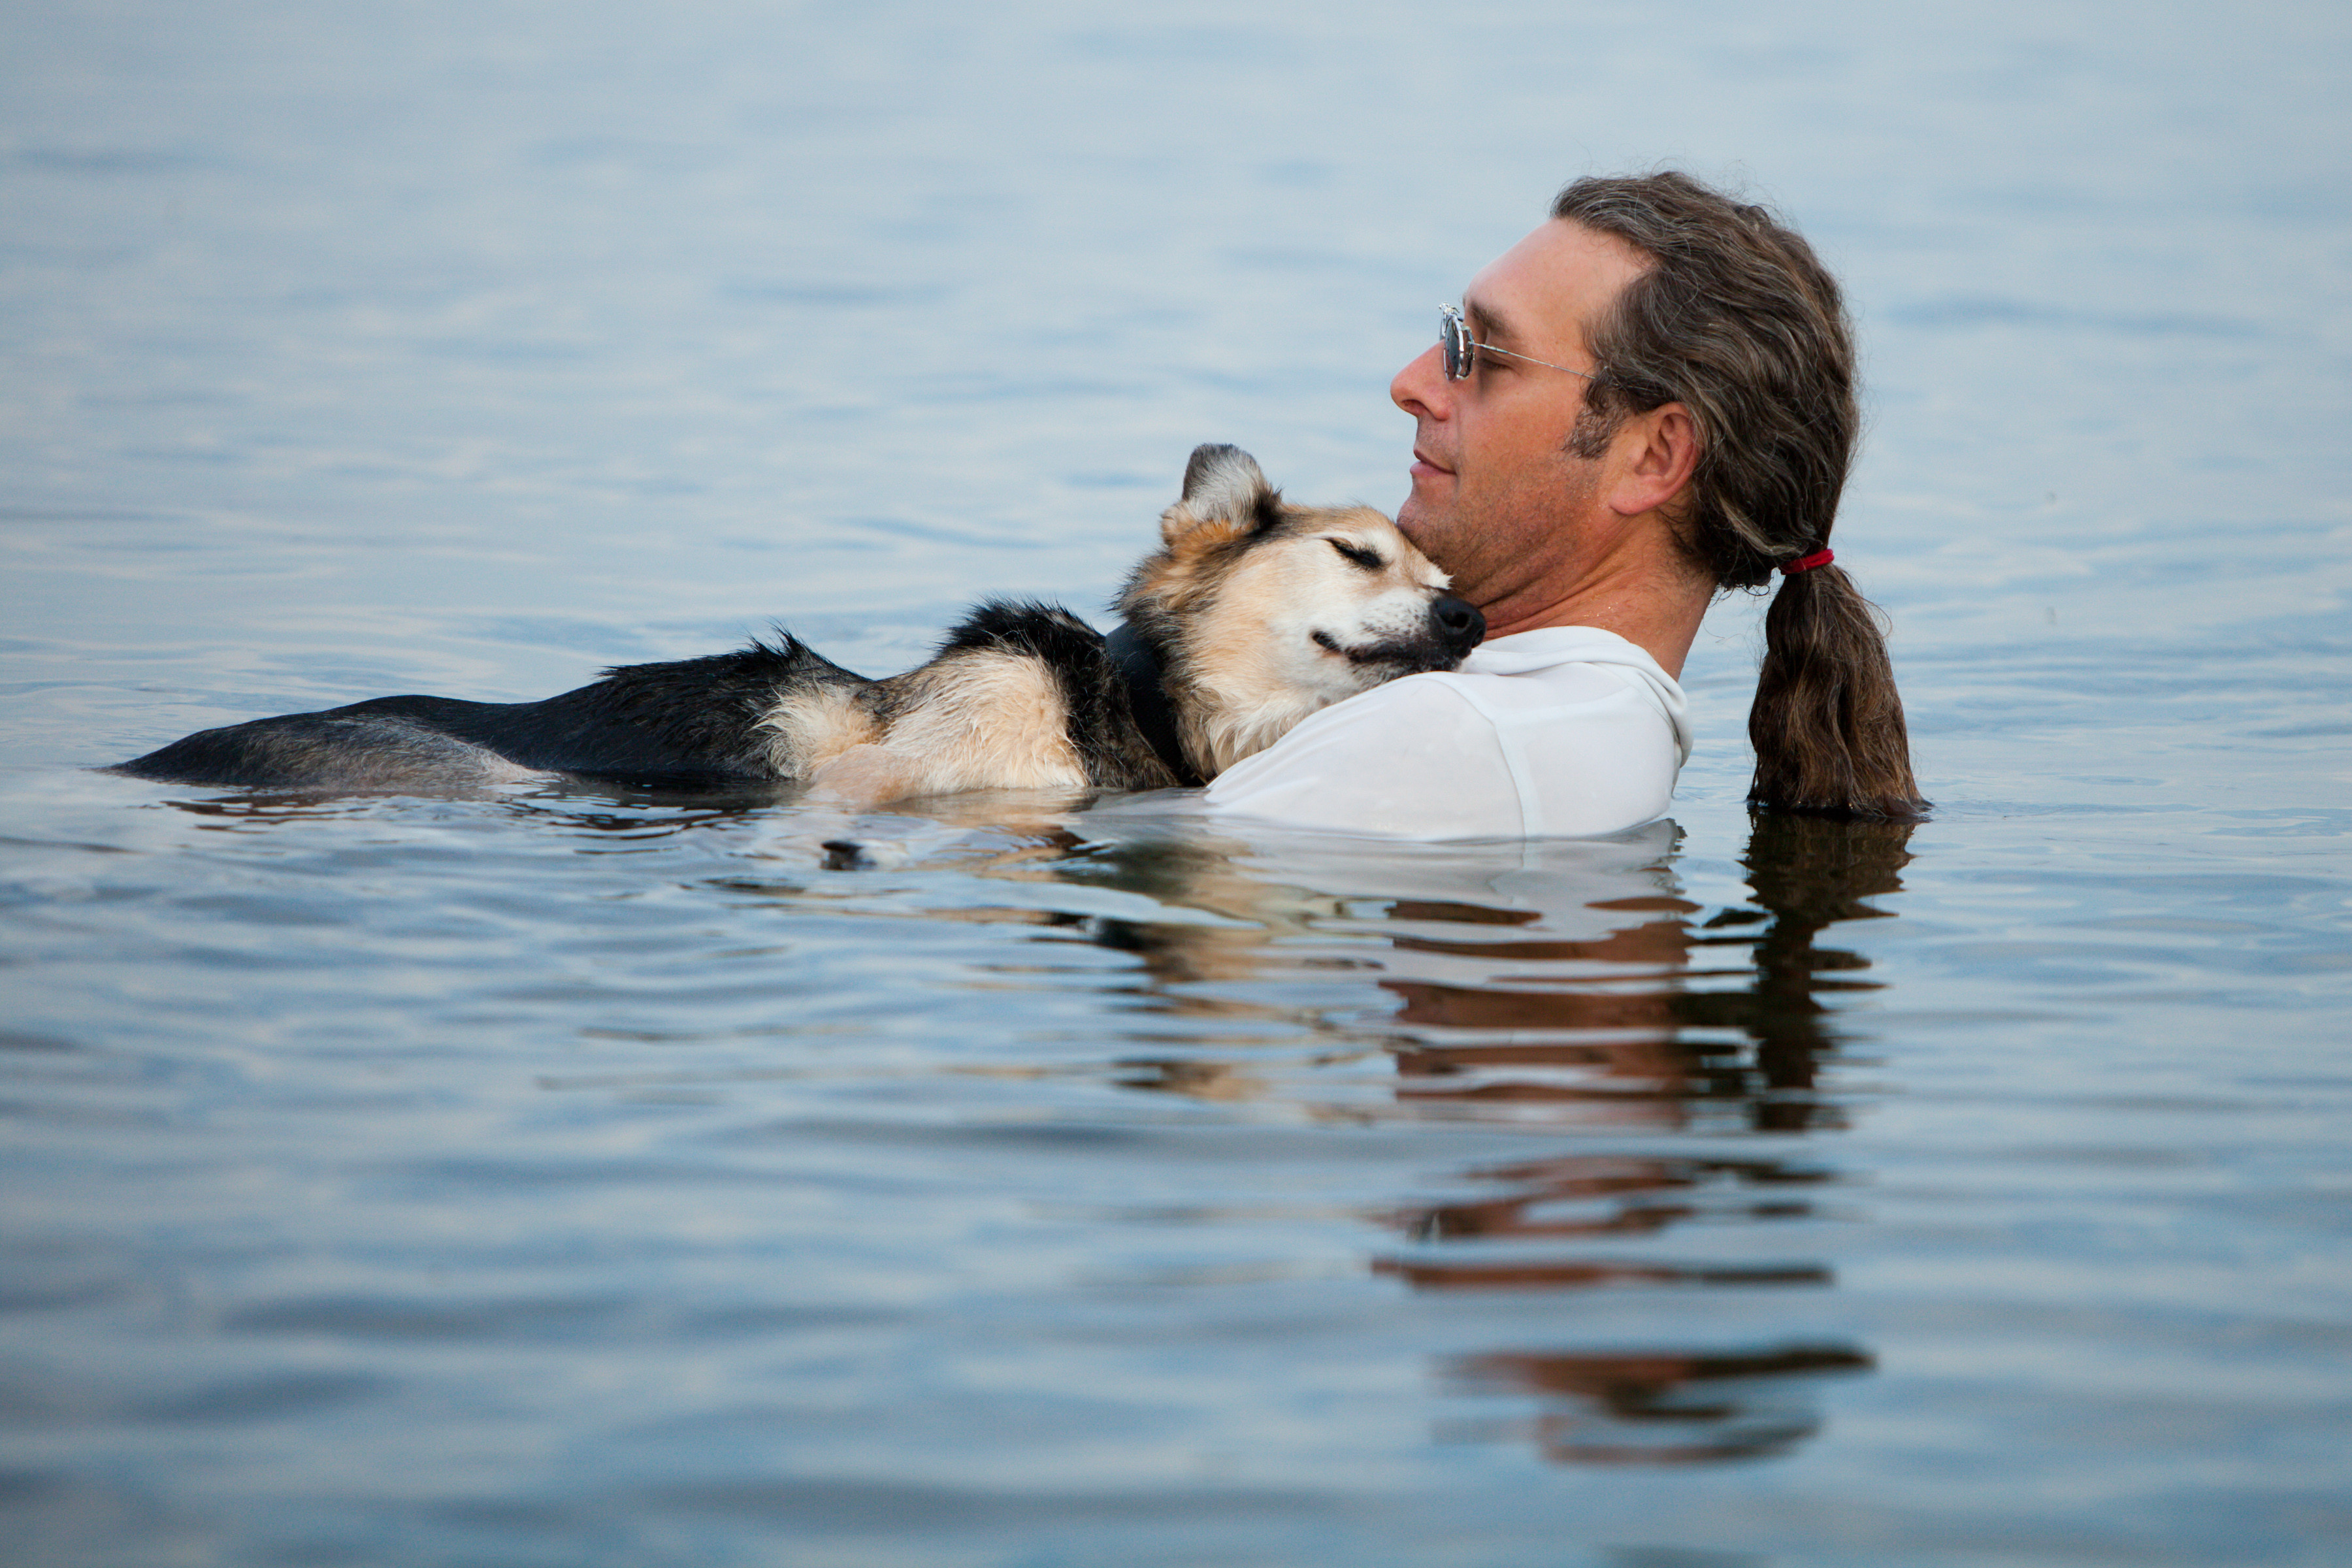 Owner and dog in the water